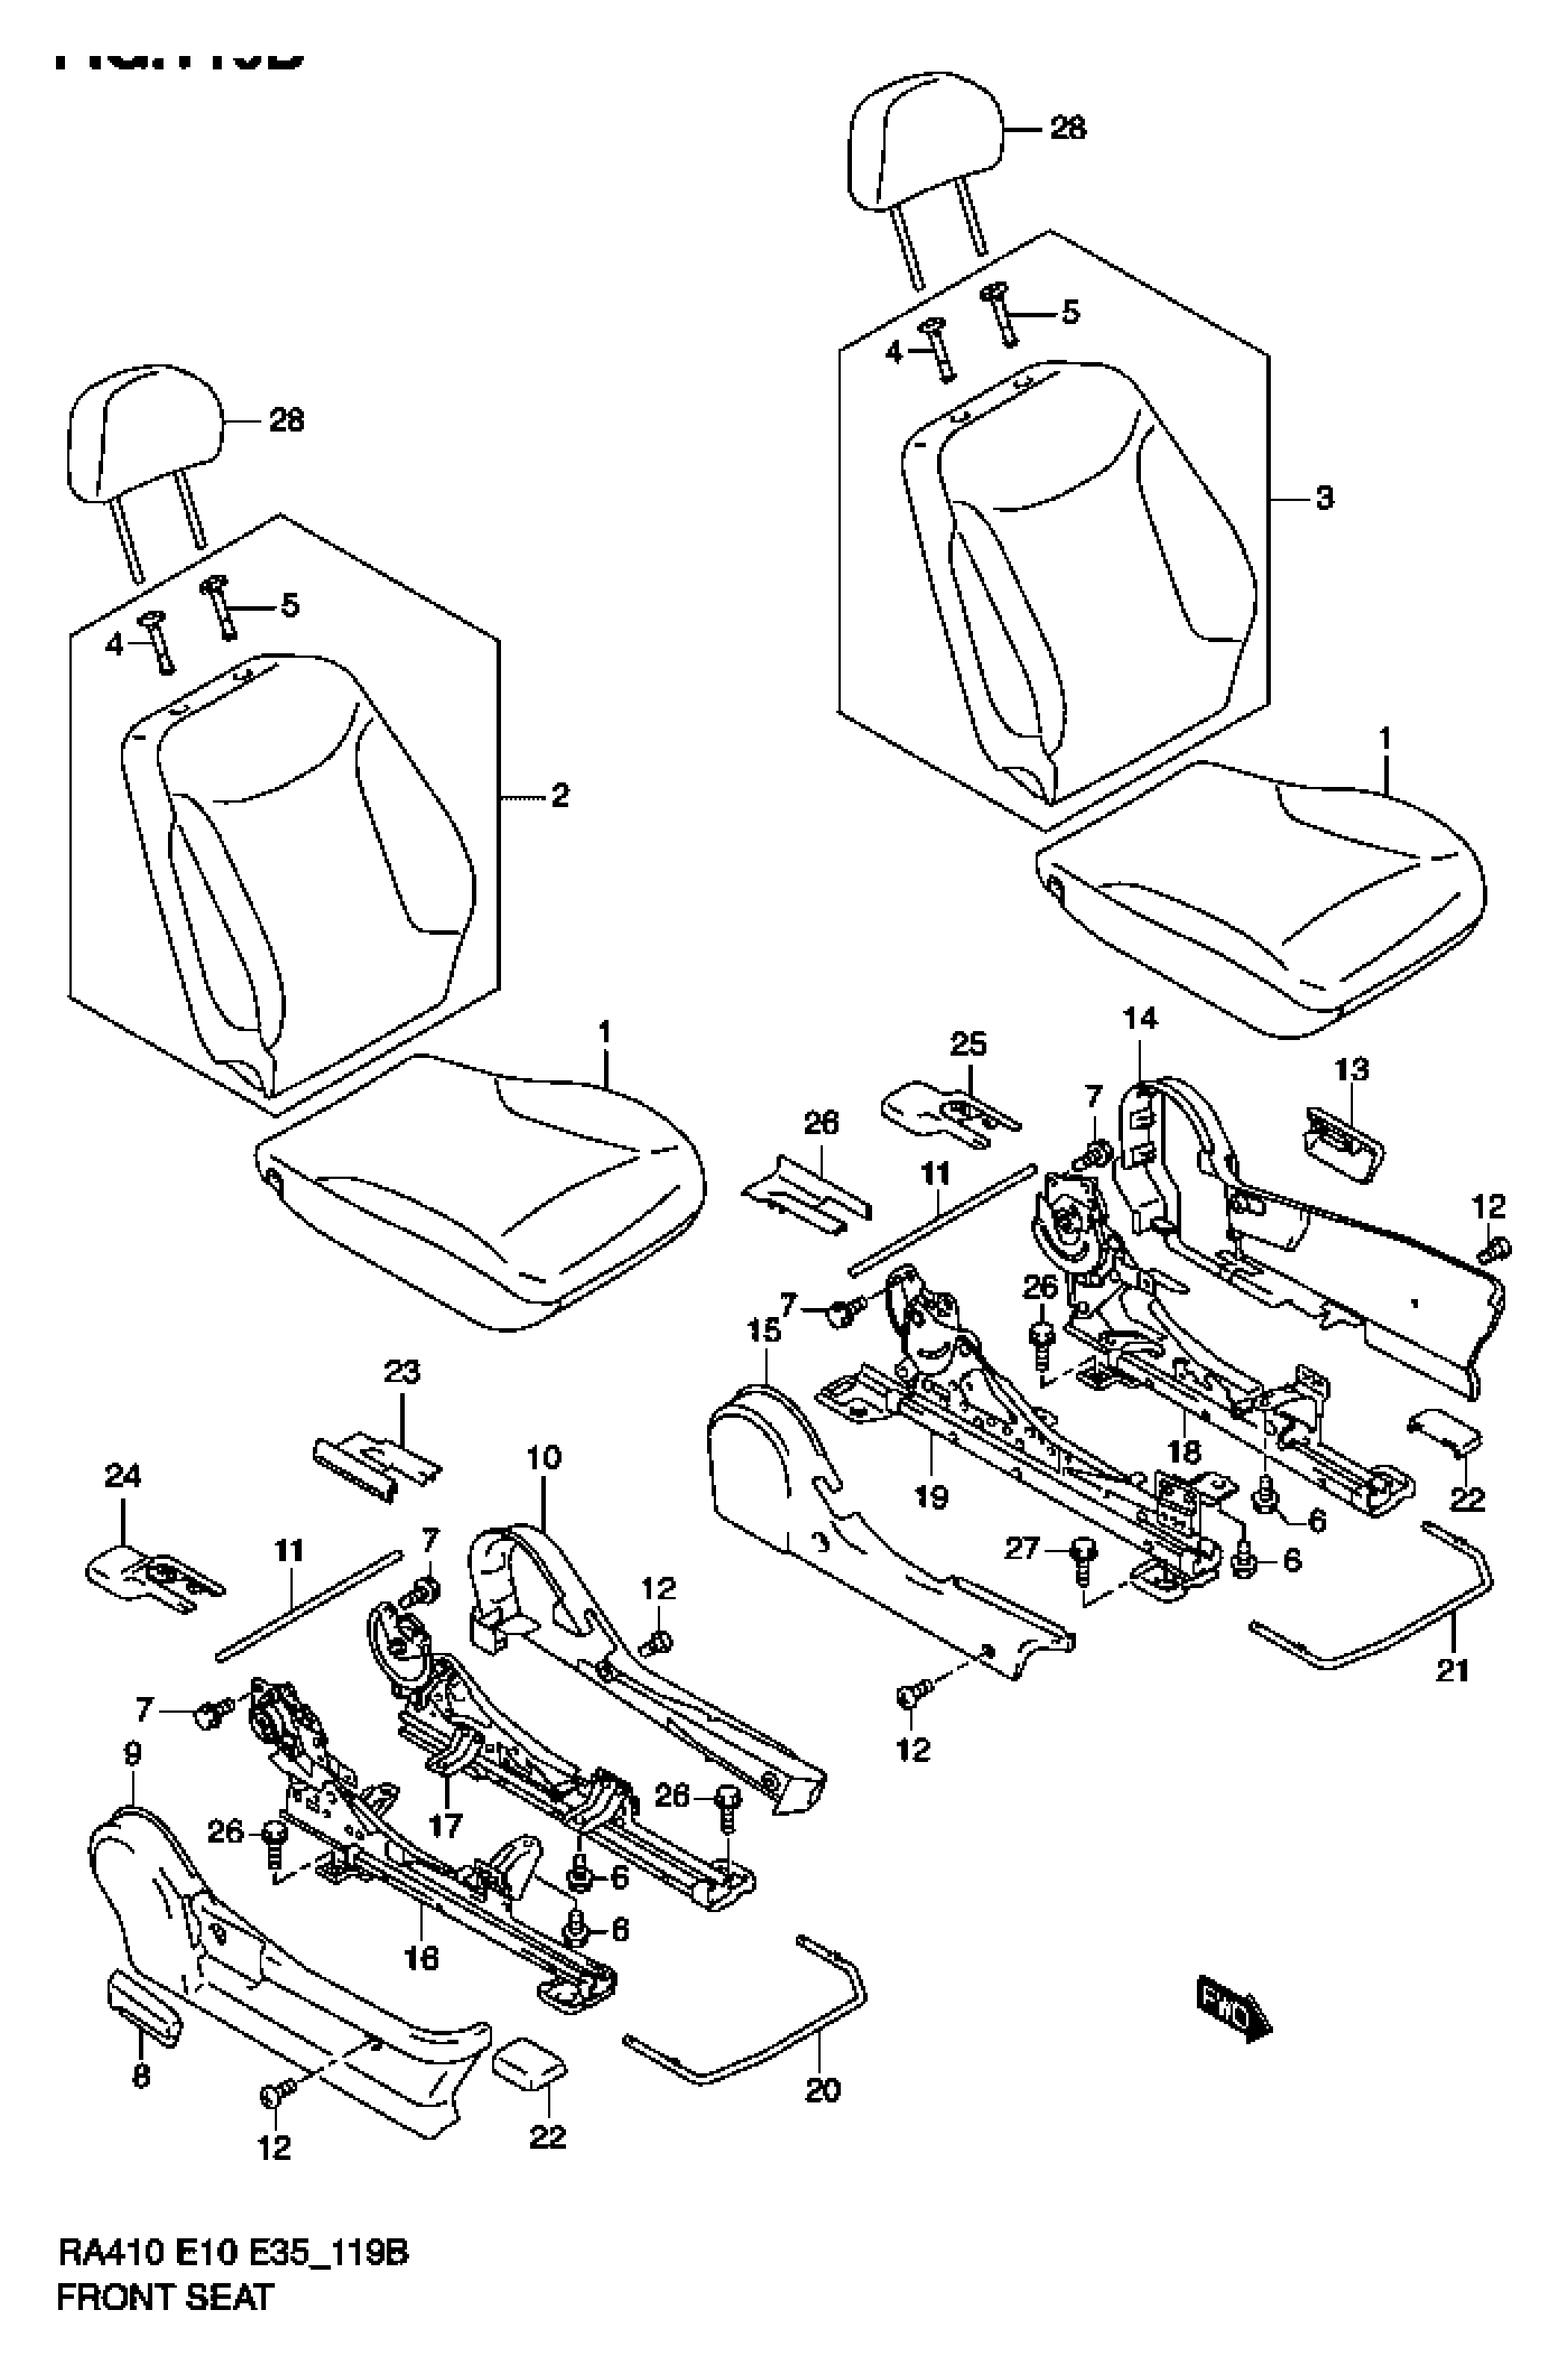 FRONT SEAT (TYPE 2,3,4)